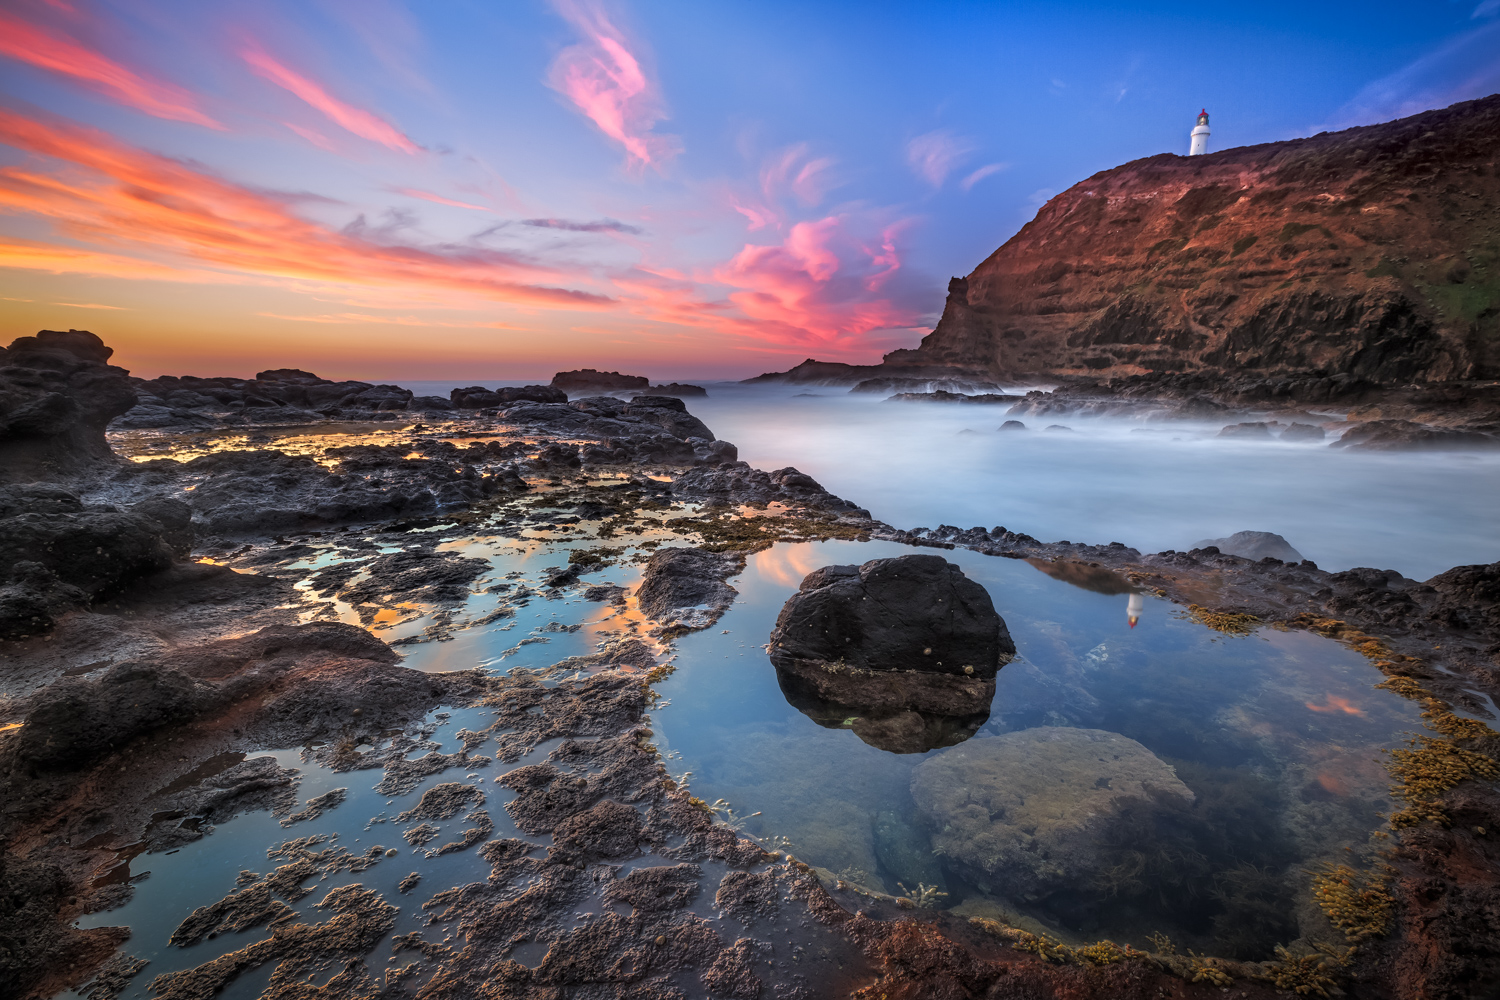 Landscape Photography Workshop -Cape Schanck, Mornington Peninsula, Victoria, Australia